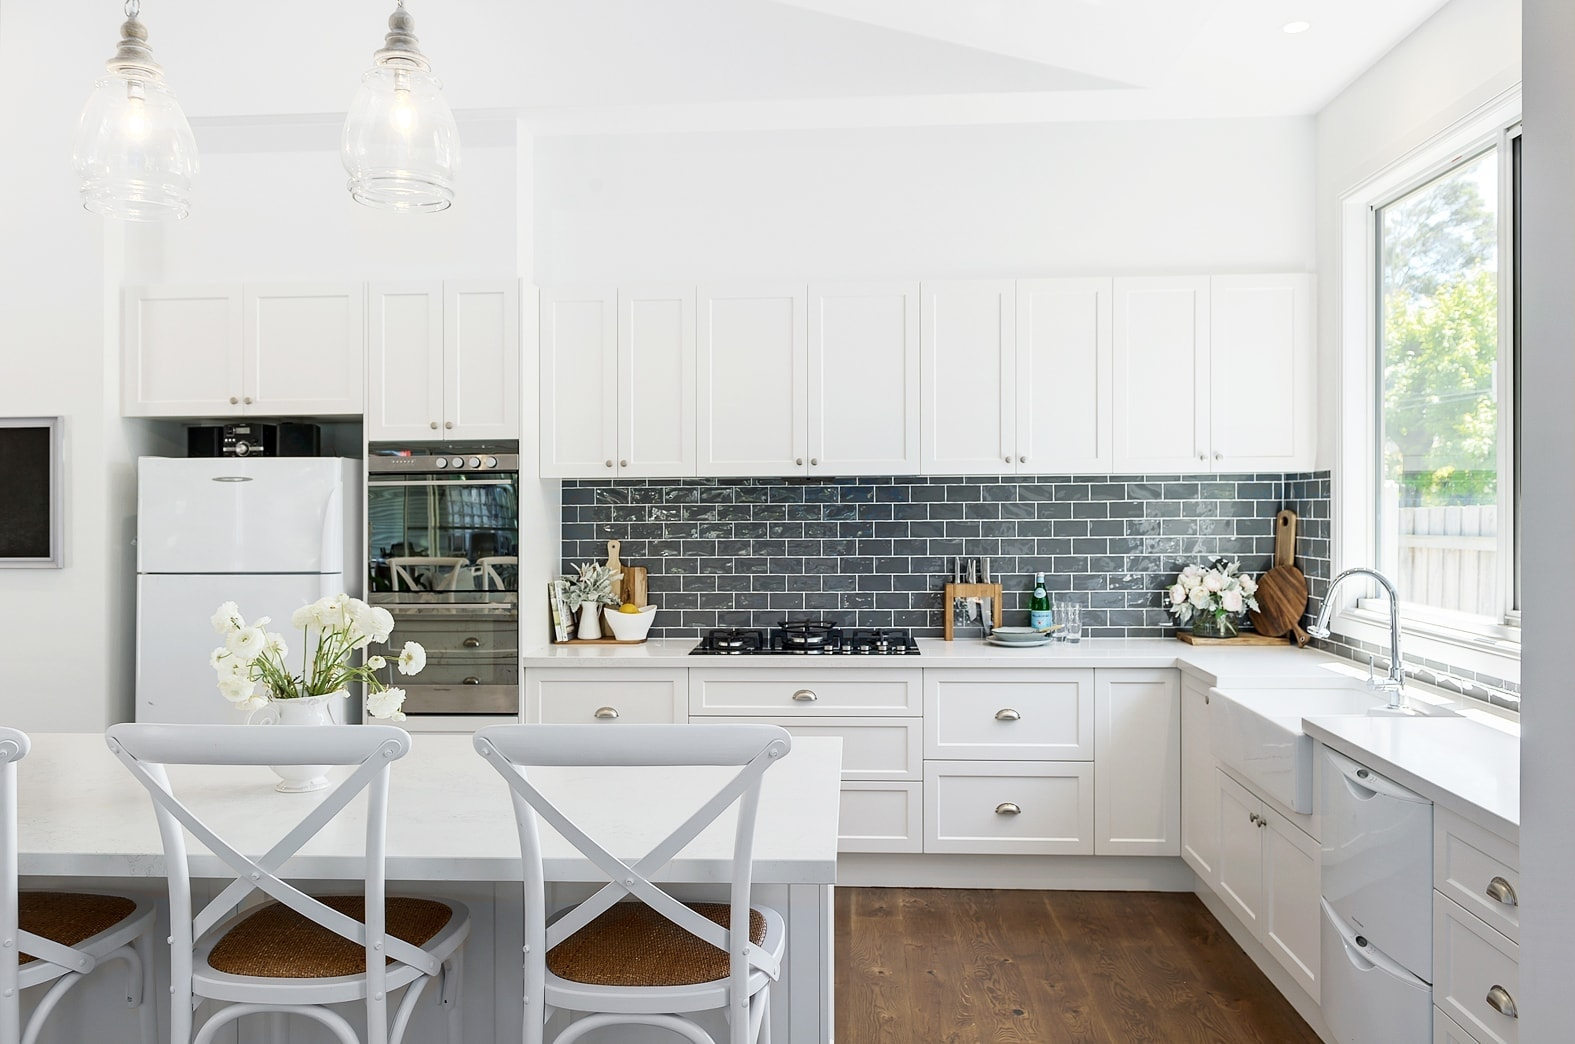 white hamptons kitchen with blue splashback tiles and shaker cabinetry door profile